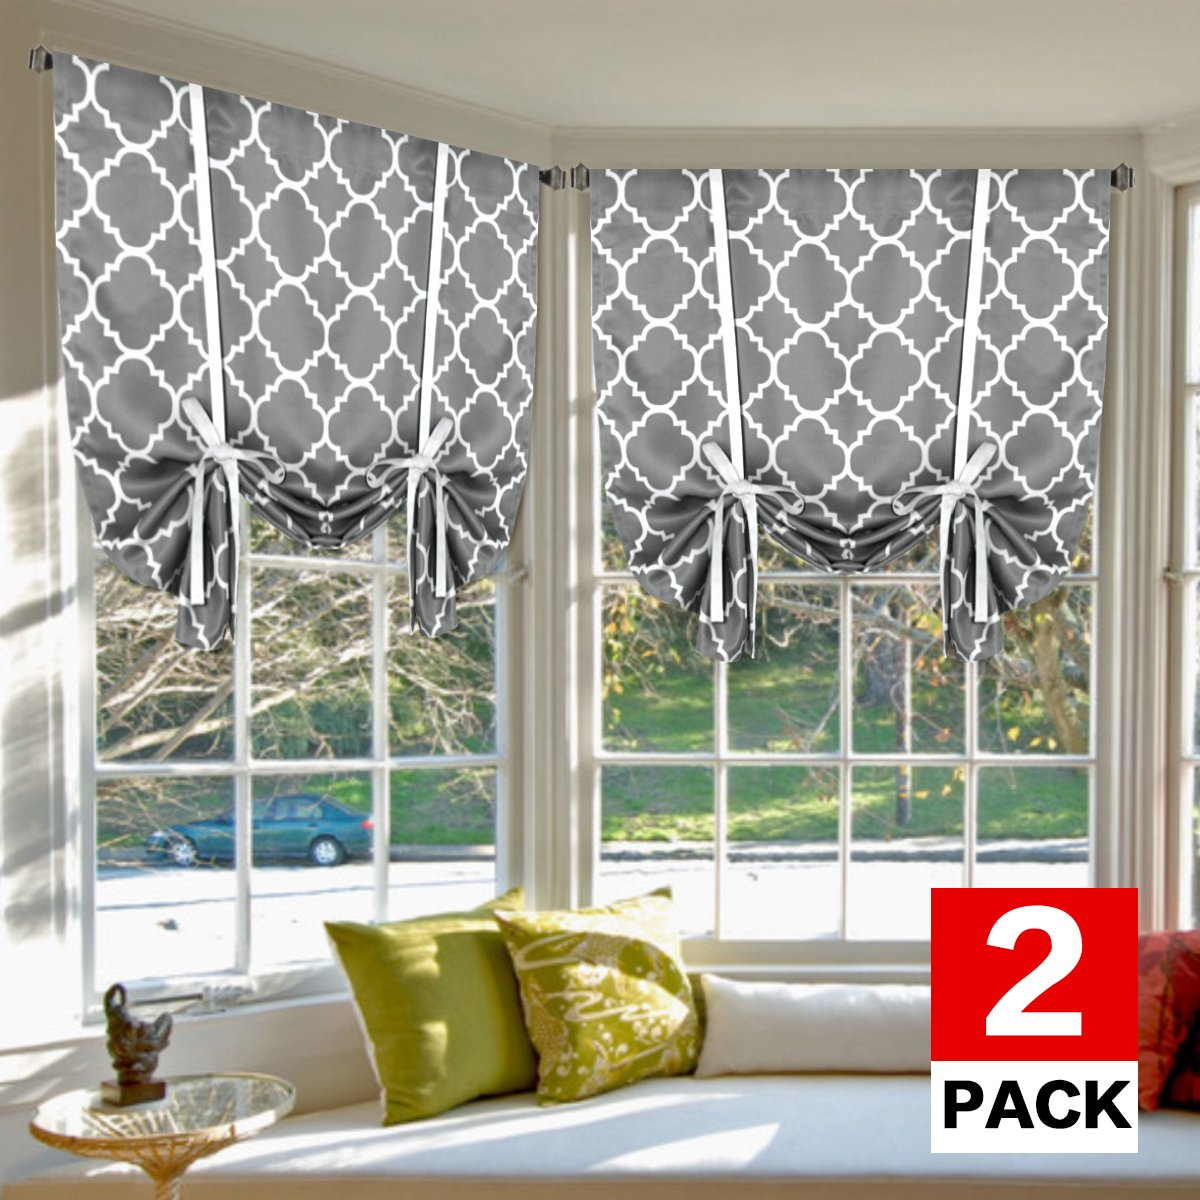 H.VERSAILTEX Thermal Insulated Blackout Curtains - Tie Up Shades for Kitchen Rod Pocket Printed Curtains for Small Window, 2-Pack, 42 x 63 Inch Long - Moroccan Tile Quatrefoil Grey Pattern